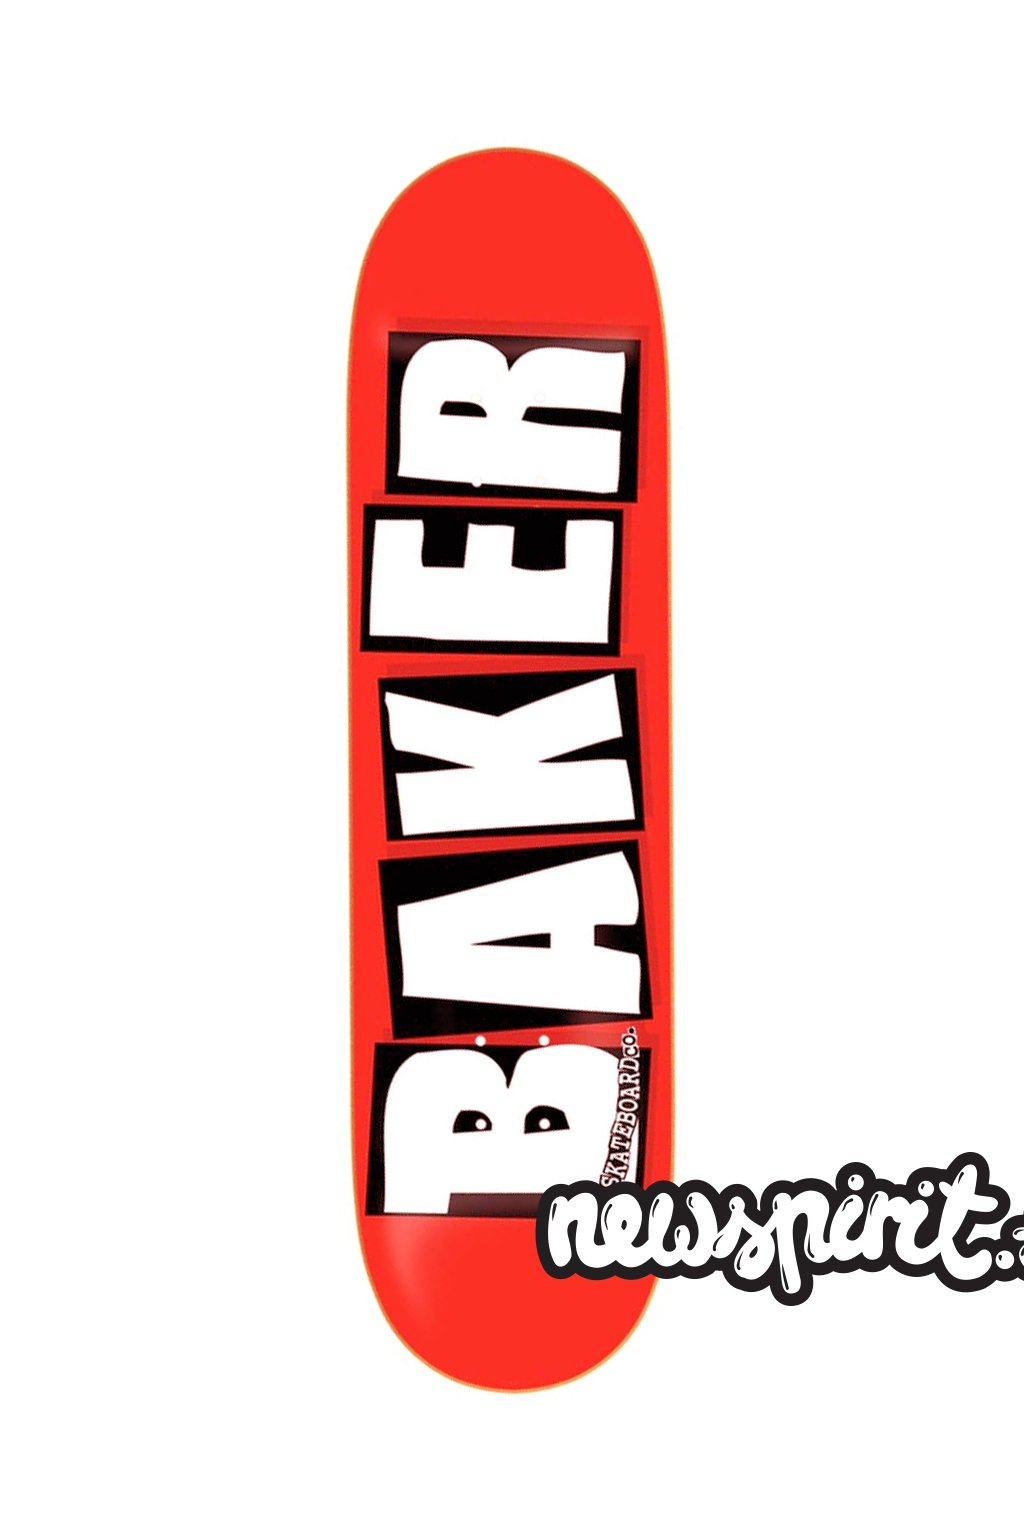 baker skateboards brand logo red white mini skateboard 1